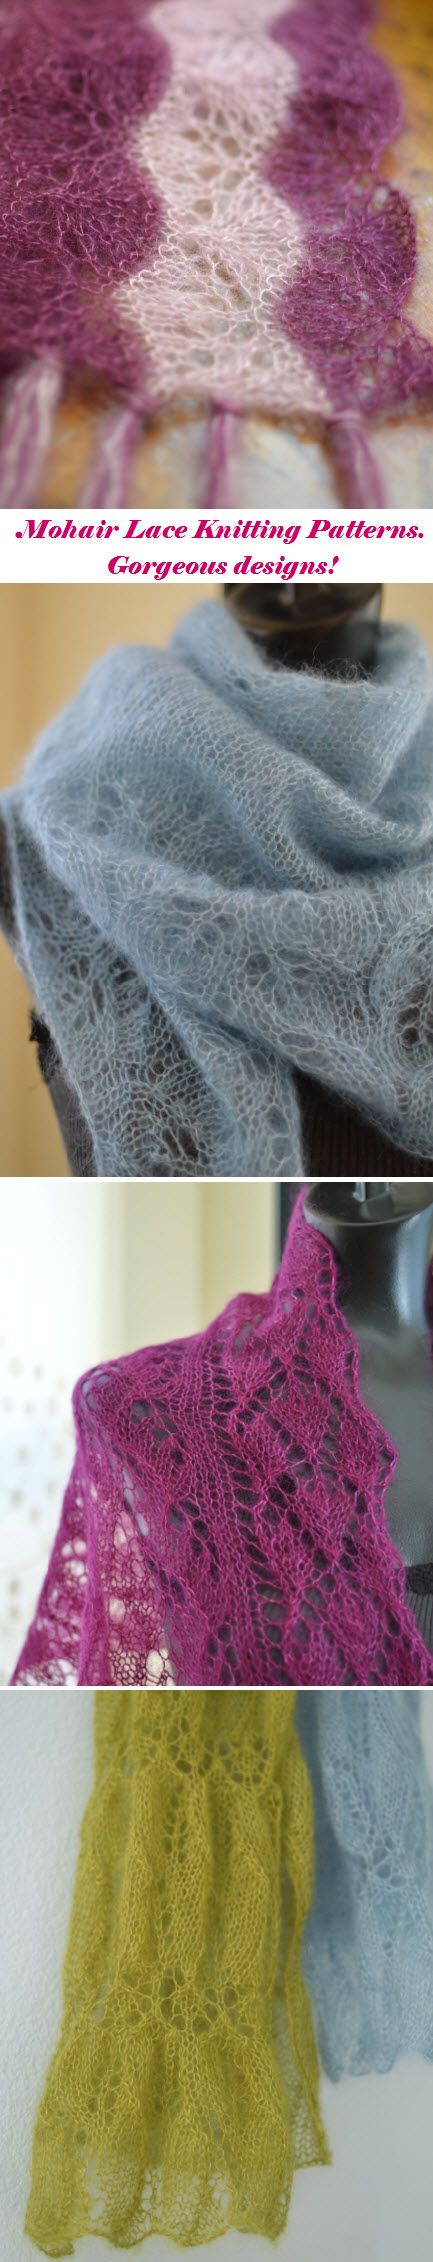 Knitting Pattern for Mohair/Silk yarn. Lots of gorgeous lace designs! #knitting SweaterBabe.com